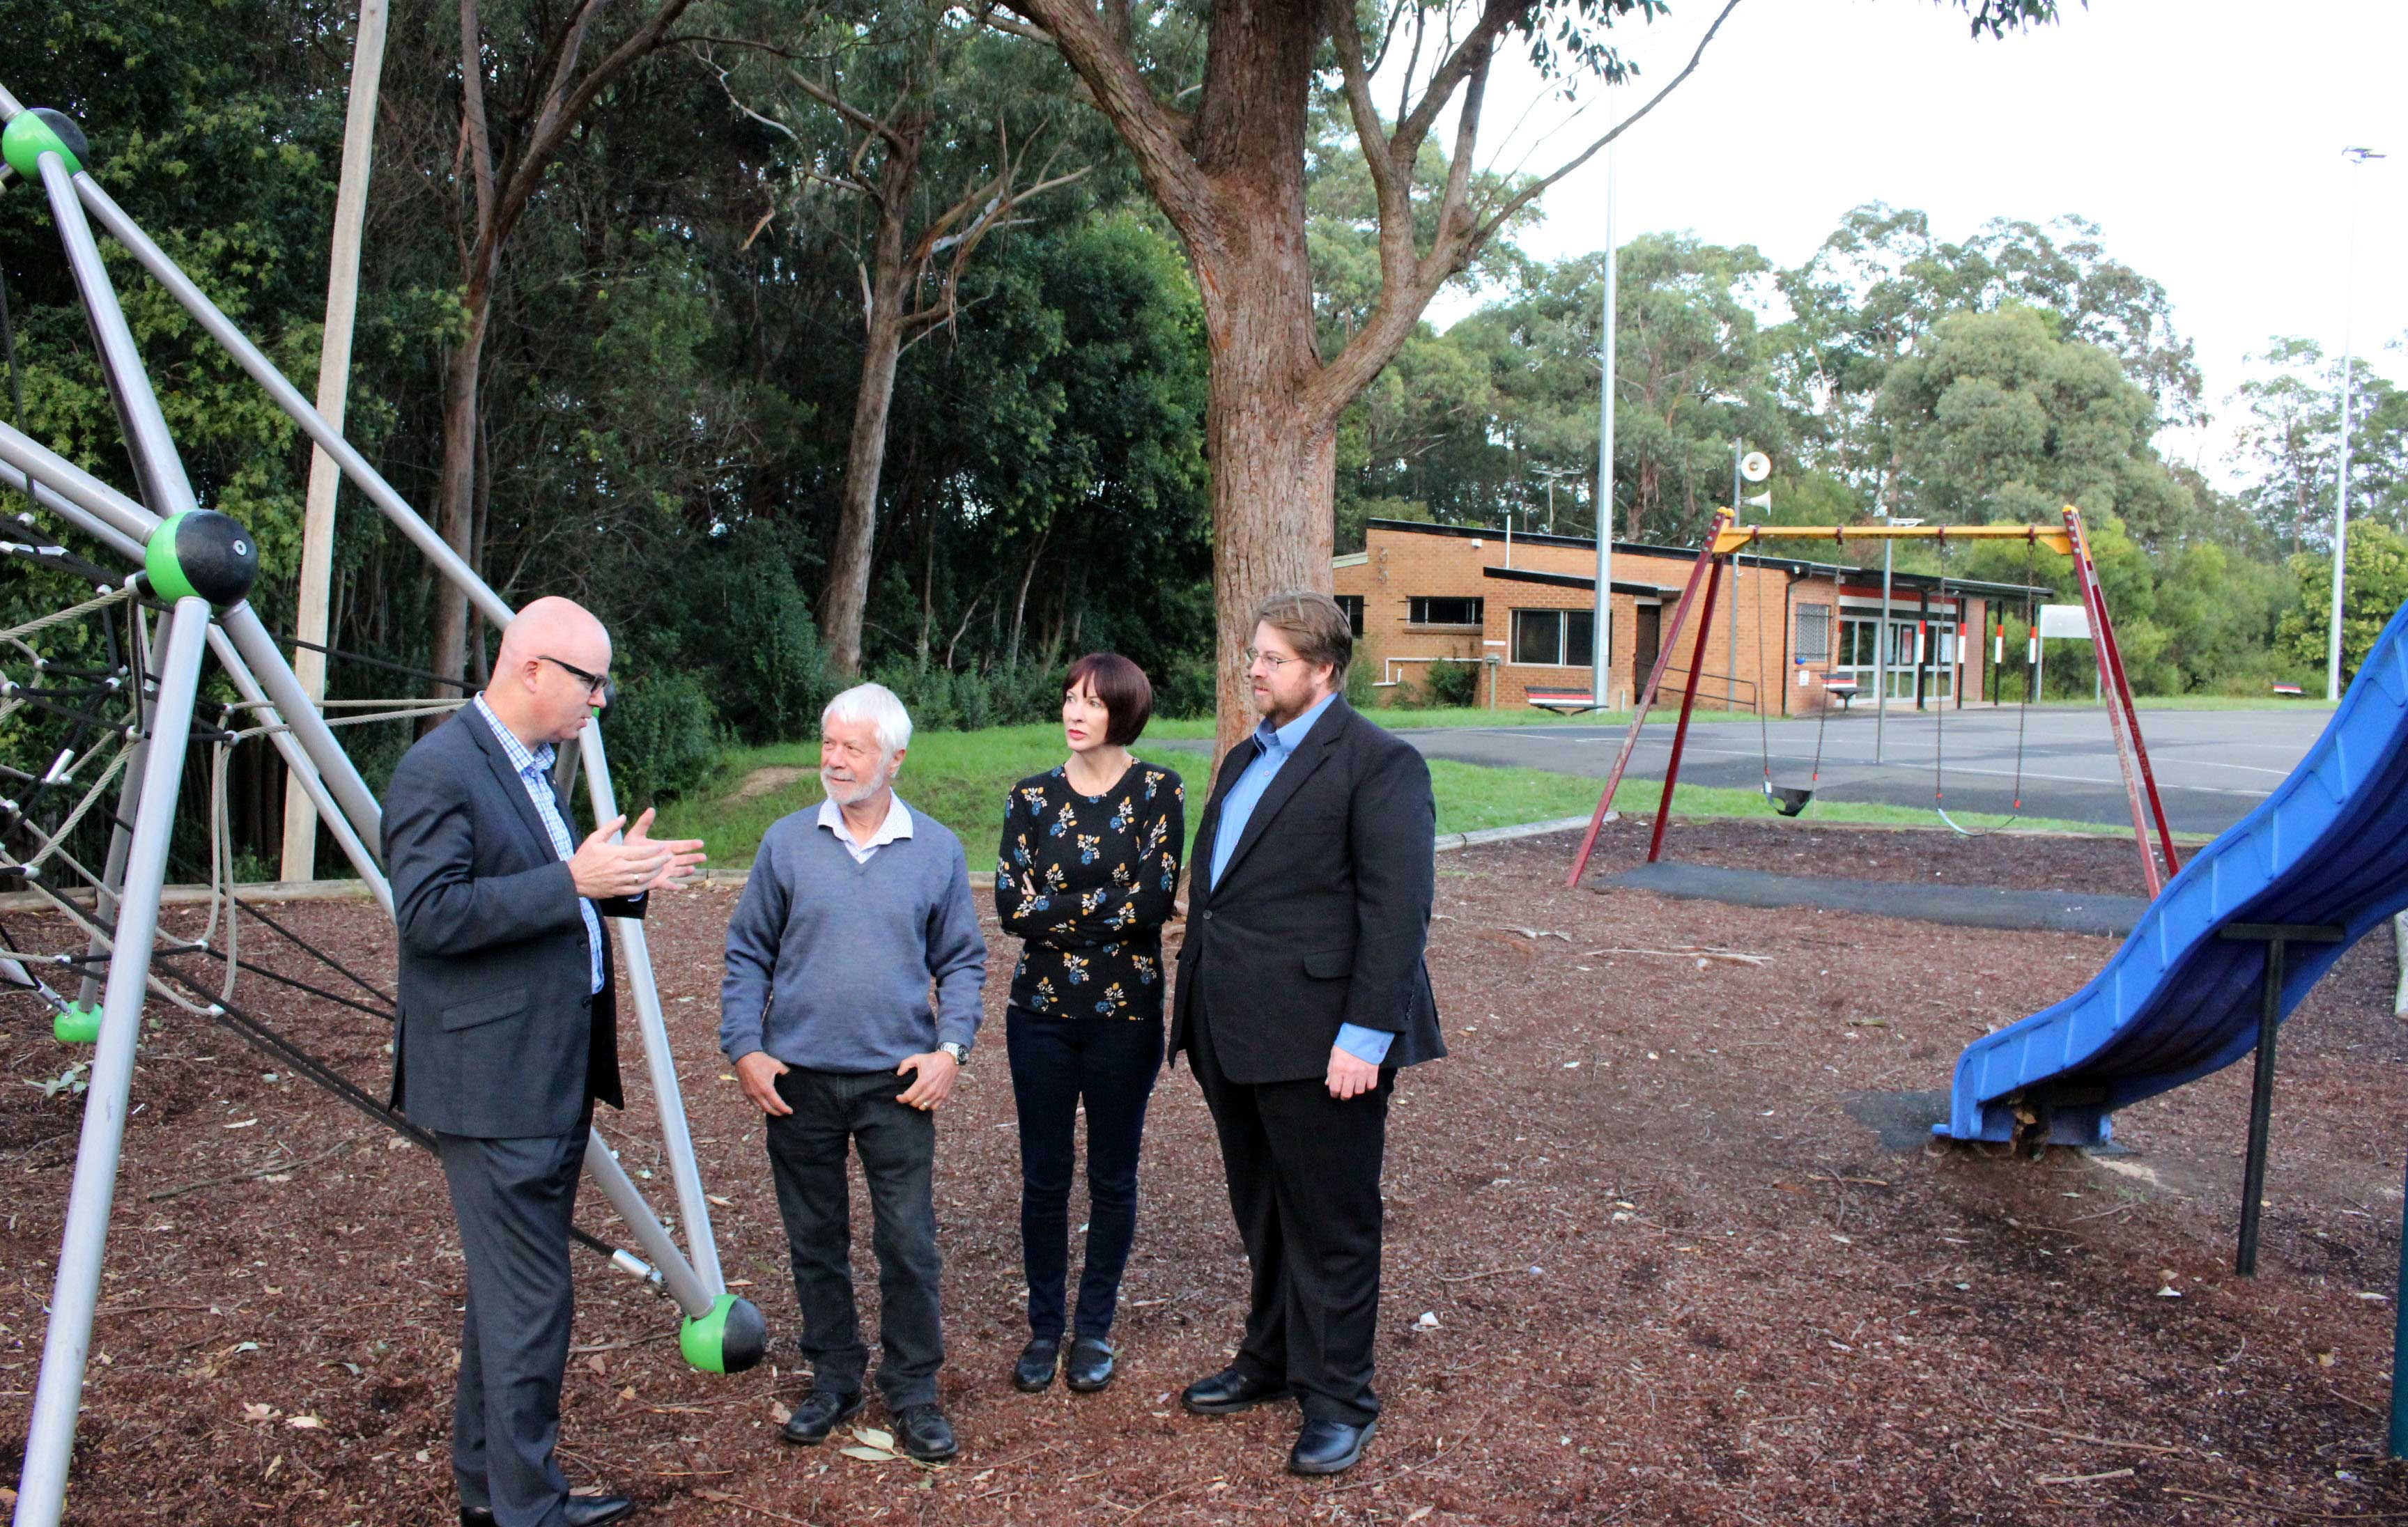 Mayor, Cr Mark Greenhill with Ward 3 Councillors, Mick Fell, Shae Foenander and Daniel Myles at Summerhayes Park playground, Winmalee, which will become more inclusive to meet the needs of children and carers.